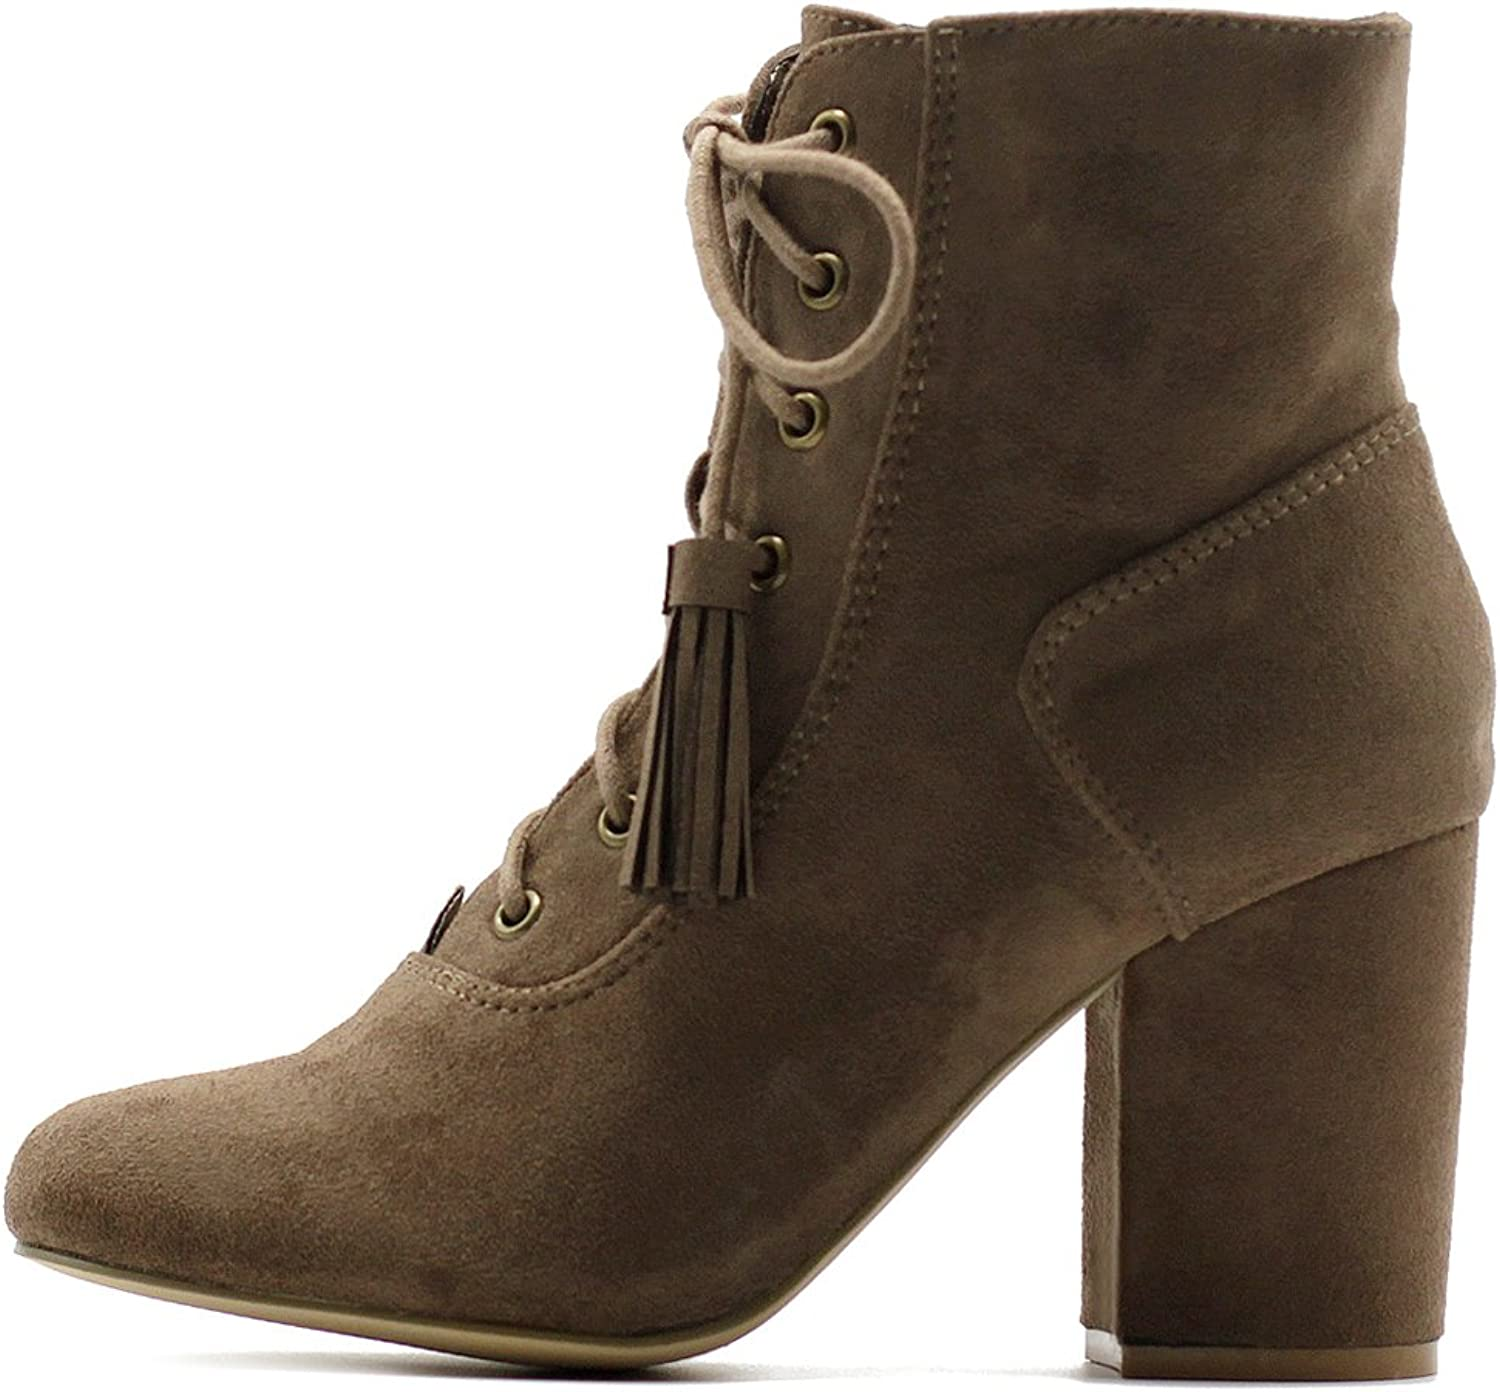 Ollio Women's shoes Faux Suede Tessle Lace Up Stacked High Heel Ankle Boots